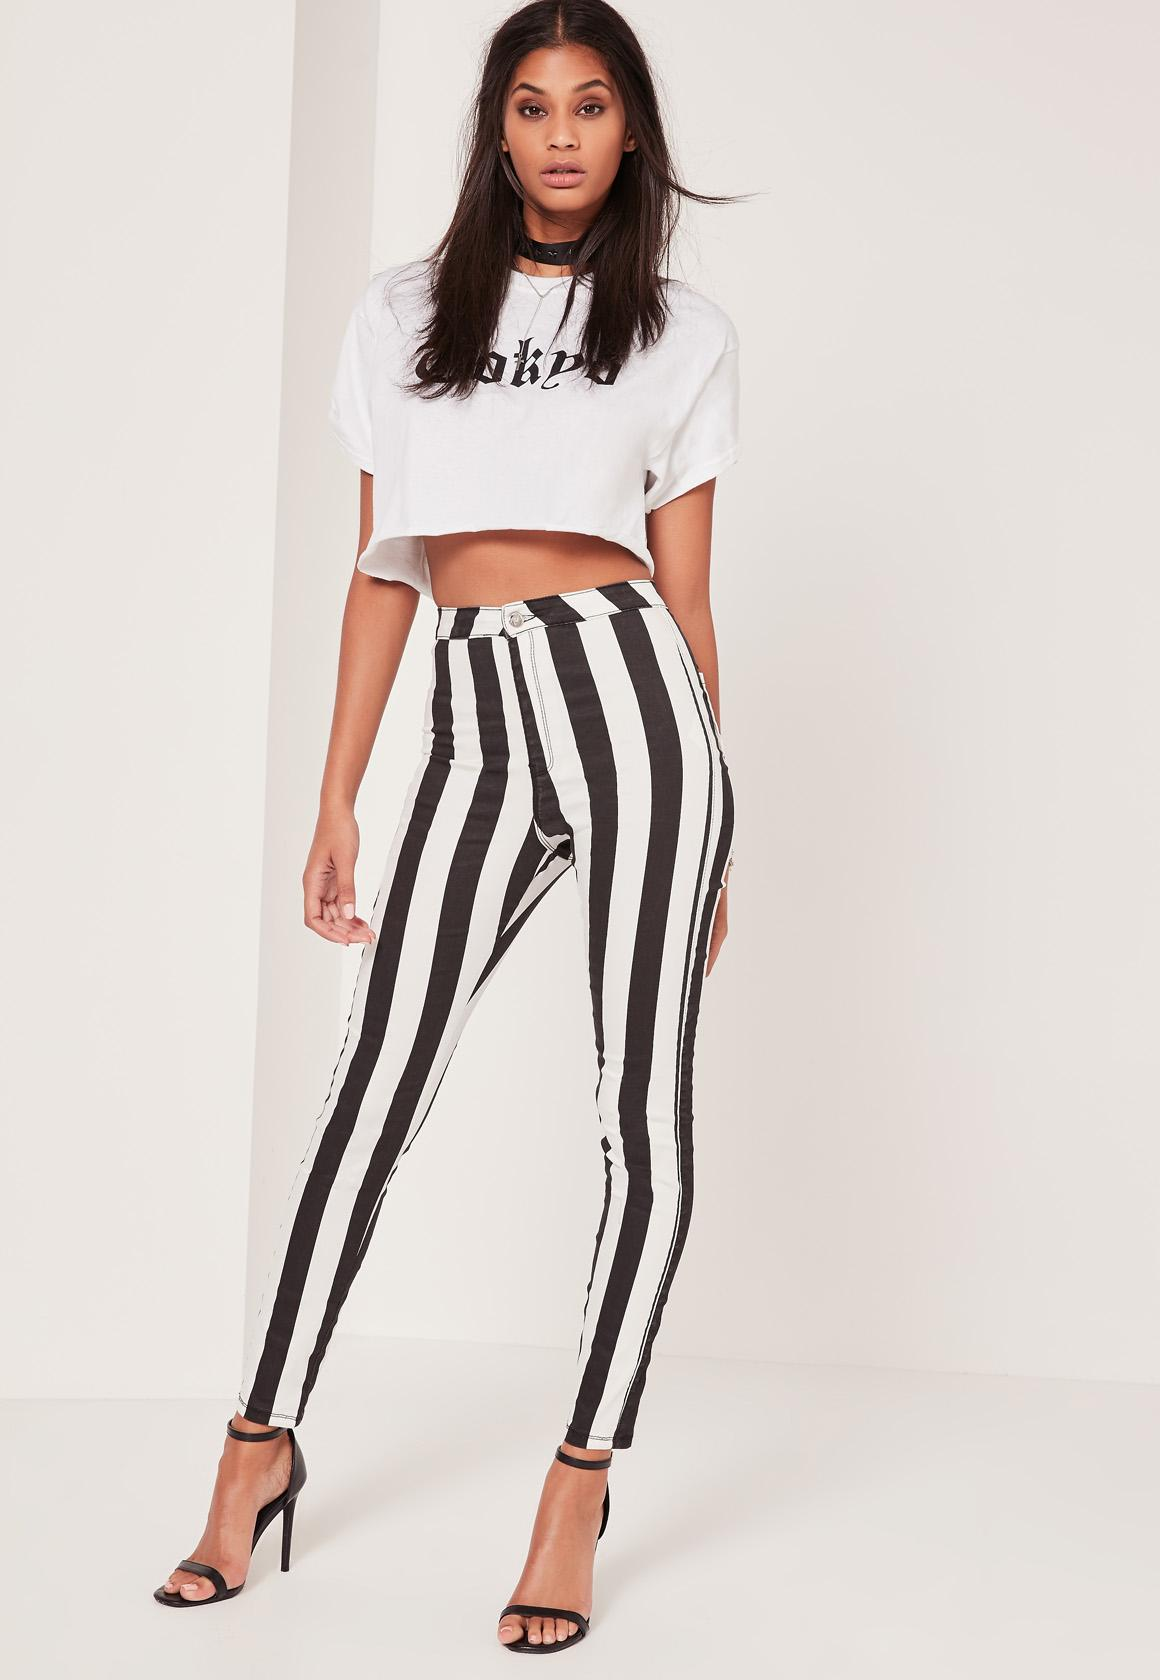 Monochrome Vice High Waisted Striped Skinny Jeans| Missguided